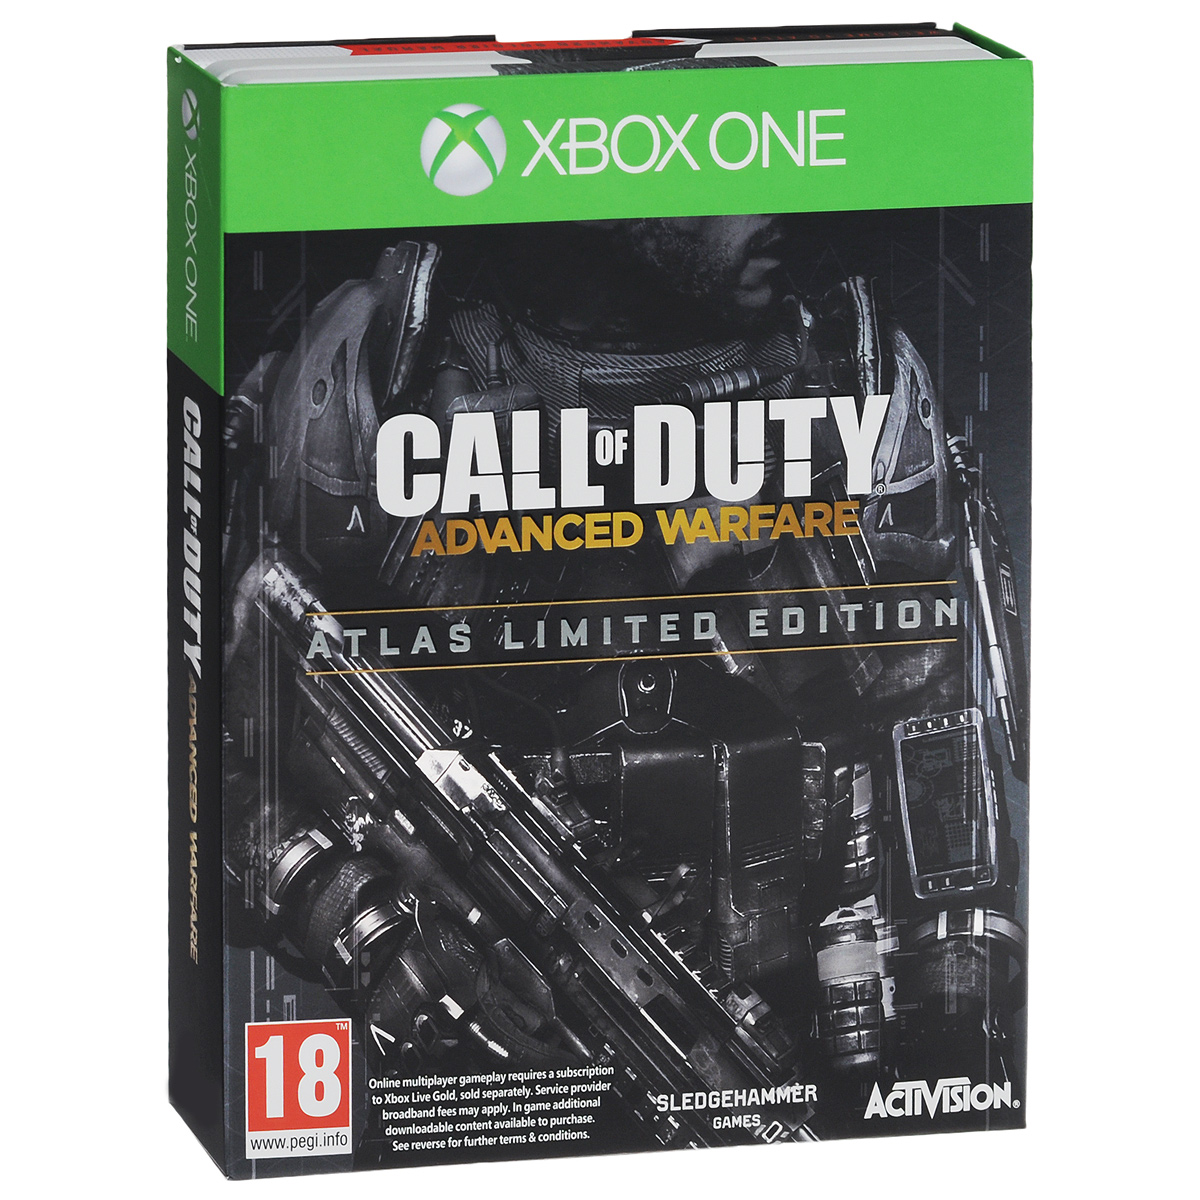 Call of Duty: Advanced Warfare. Atlas Limited Edition (Xbox One), Sledgehammer Games